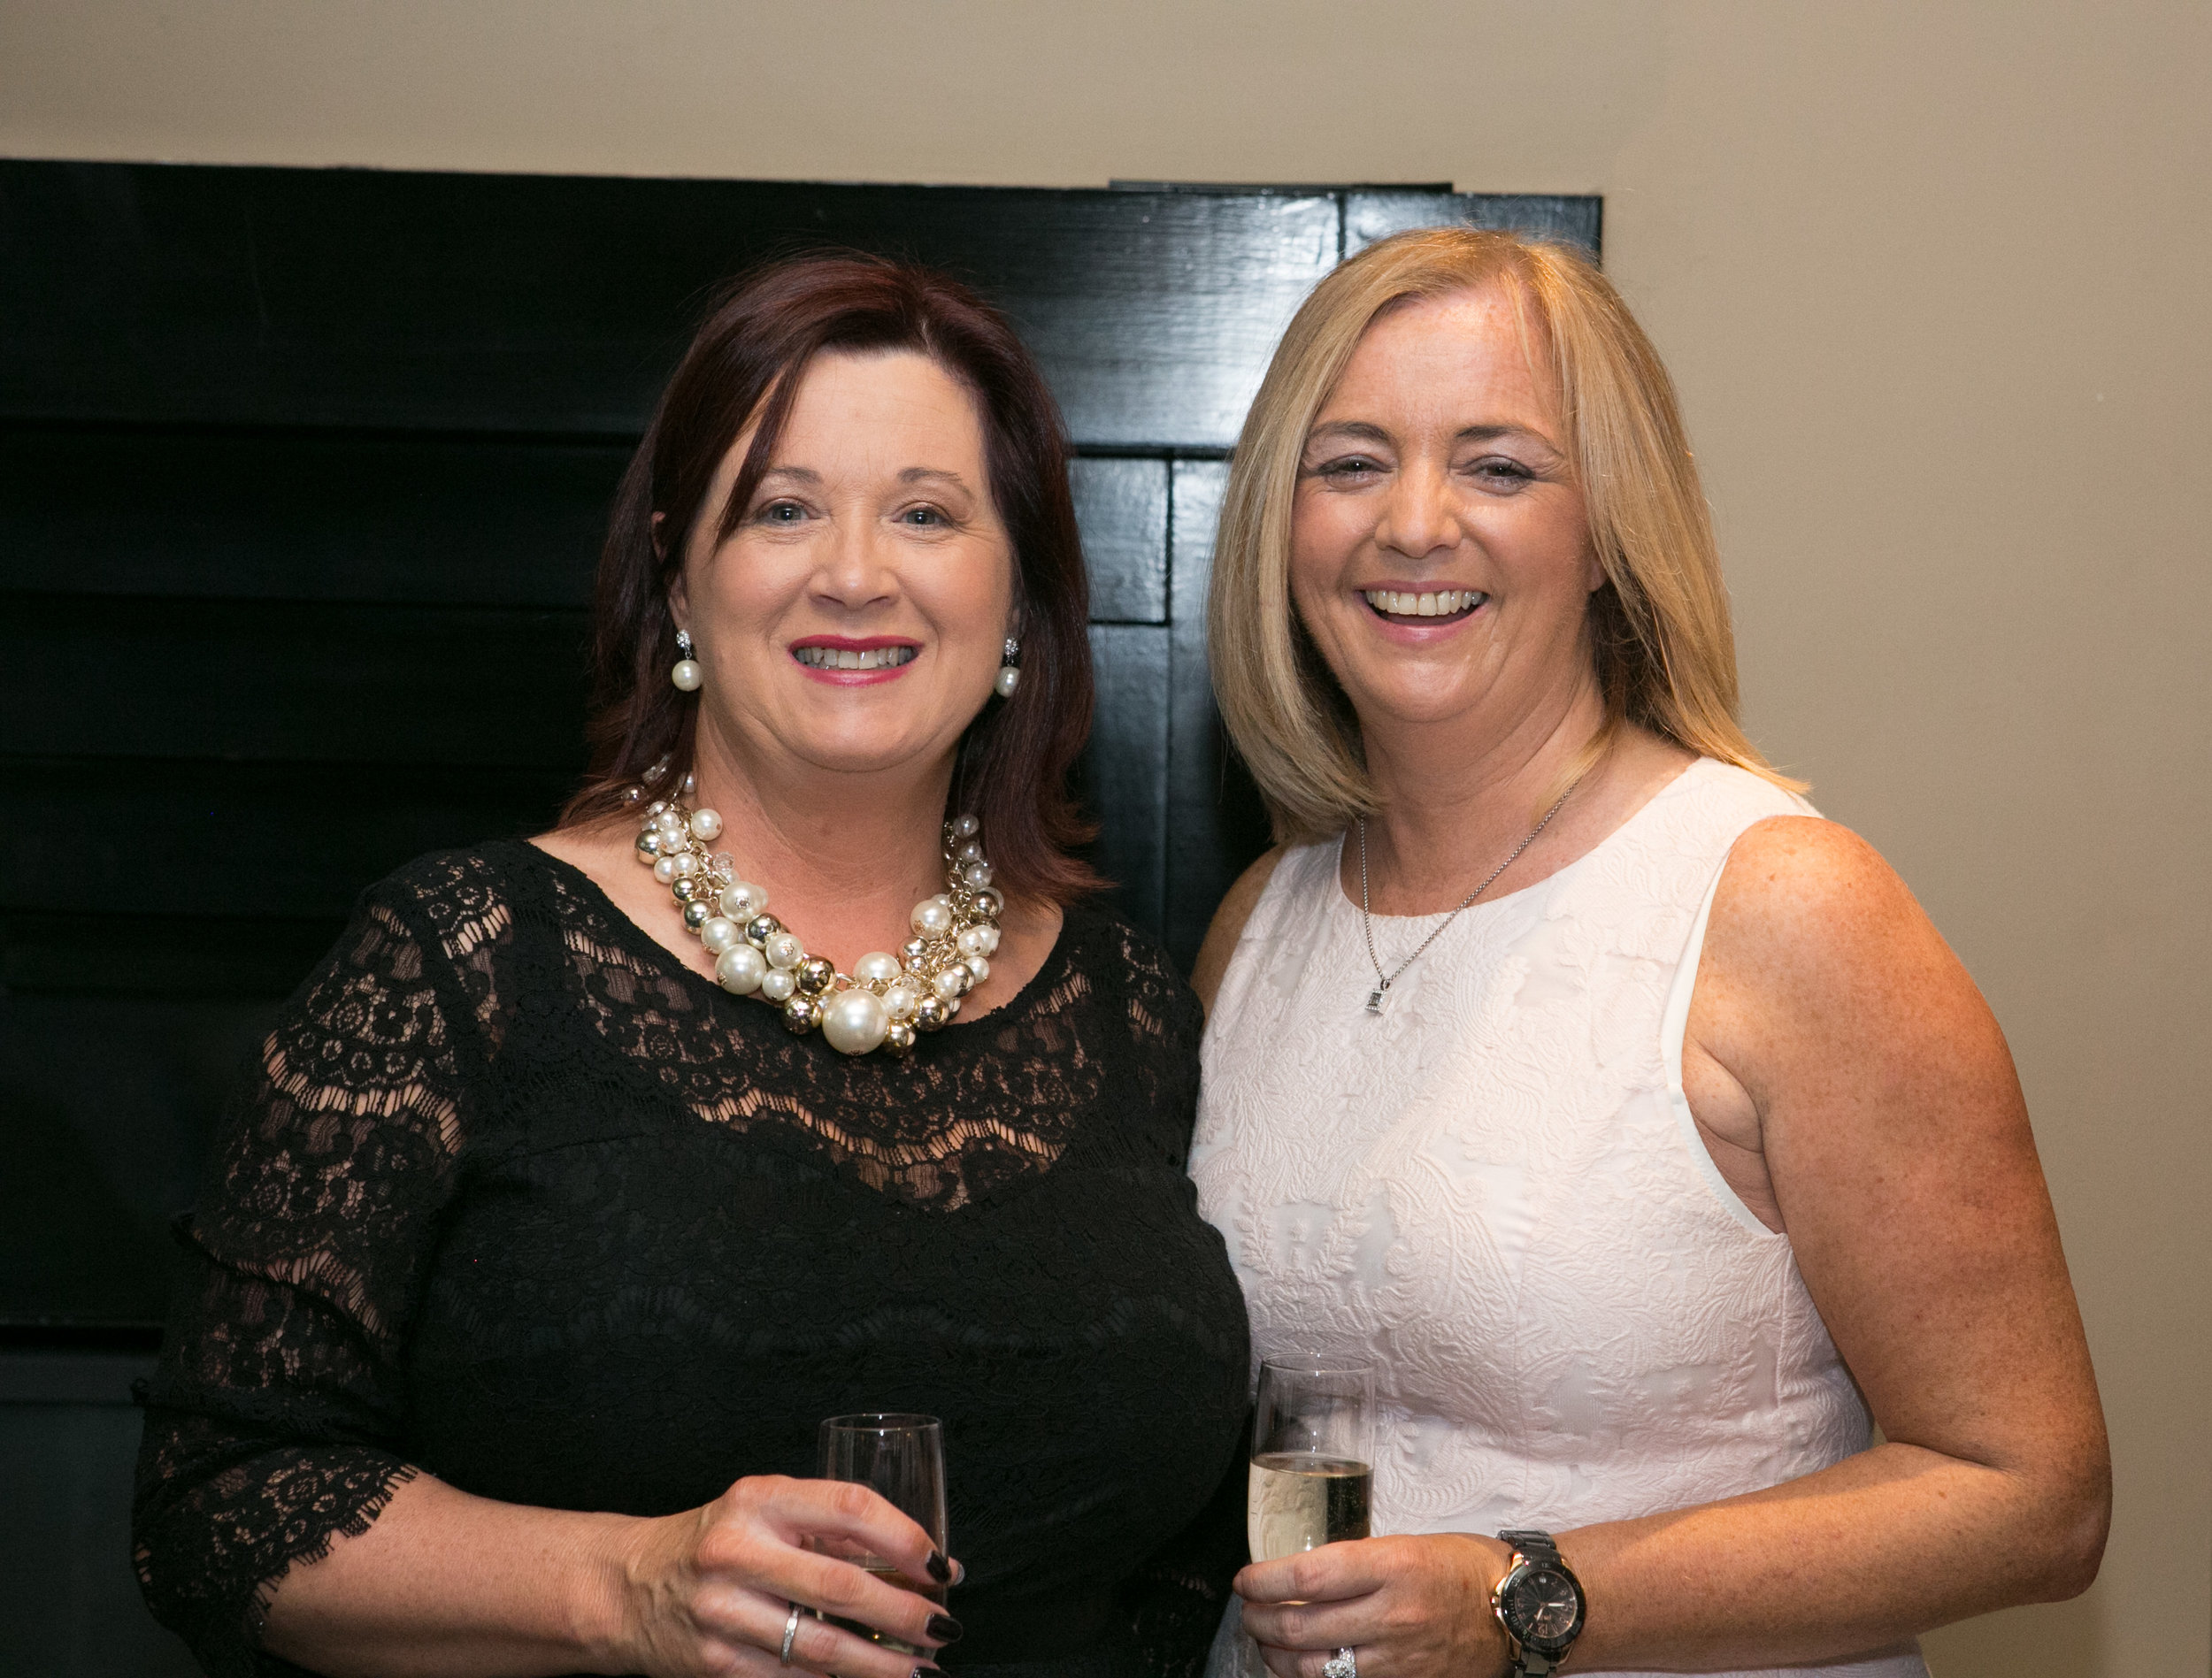 Colette O'Reilly, Ballincollig and Linda McNally from Kilcully at the Annual Aer Lingus Autumn Lunch in aid of Cork ARC Cancer Support House.